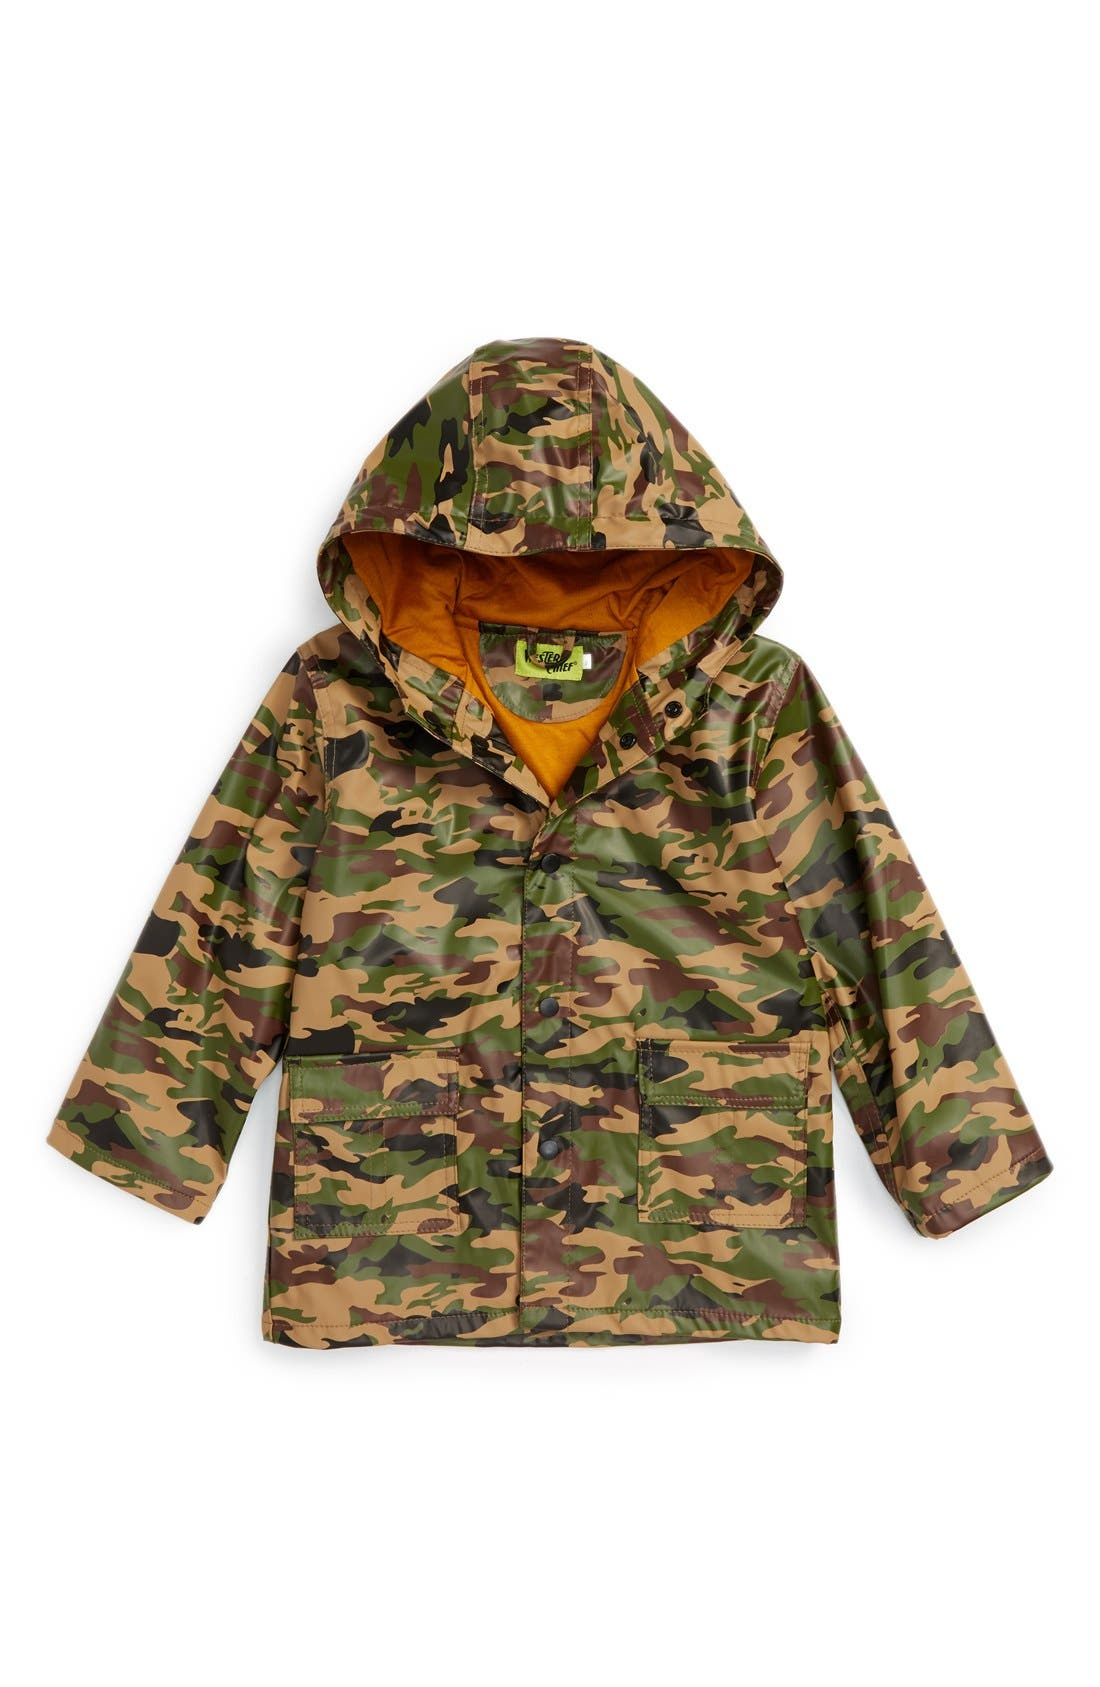 Alternate Image 1 Selected - Western Chief Camo Print Hooded Raincoat (Toddler Boys & Little Boys)